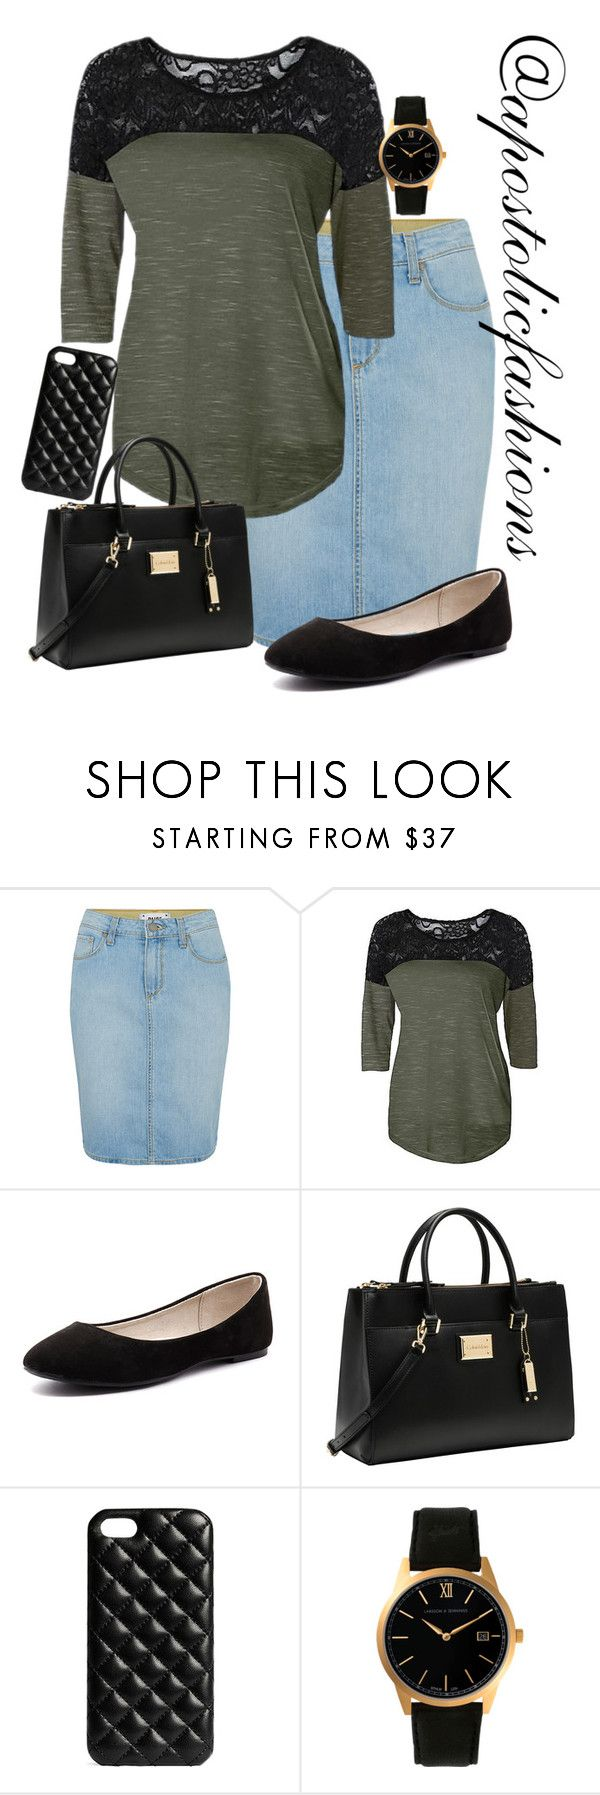 """Apostolic Fashions #1466"" by apostolicfashions ❤ liked on Polyvore featuring Paige Denim, Verali, Calvin Klein, The Case Factory, Larsson & Jennings, modestlykay and modestlywhit"